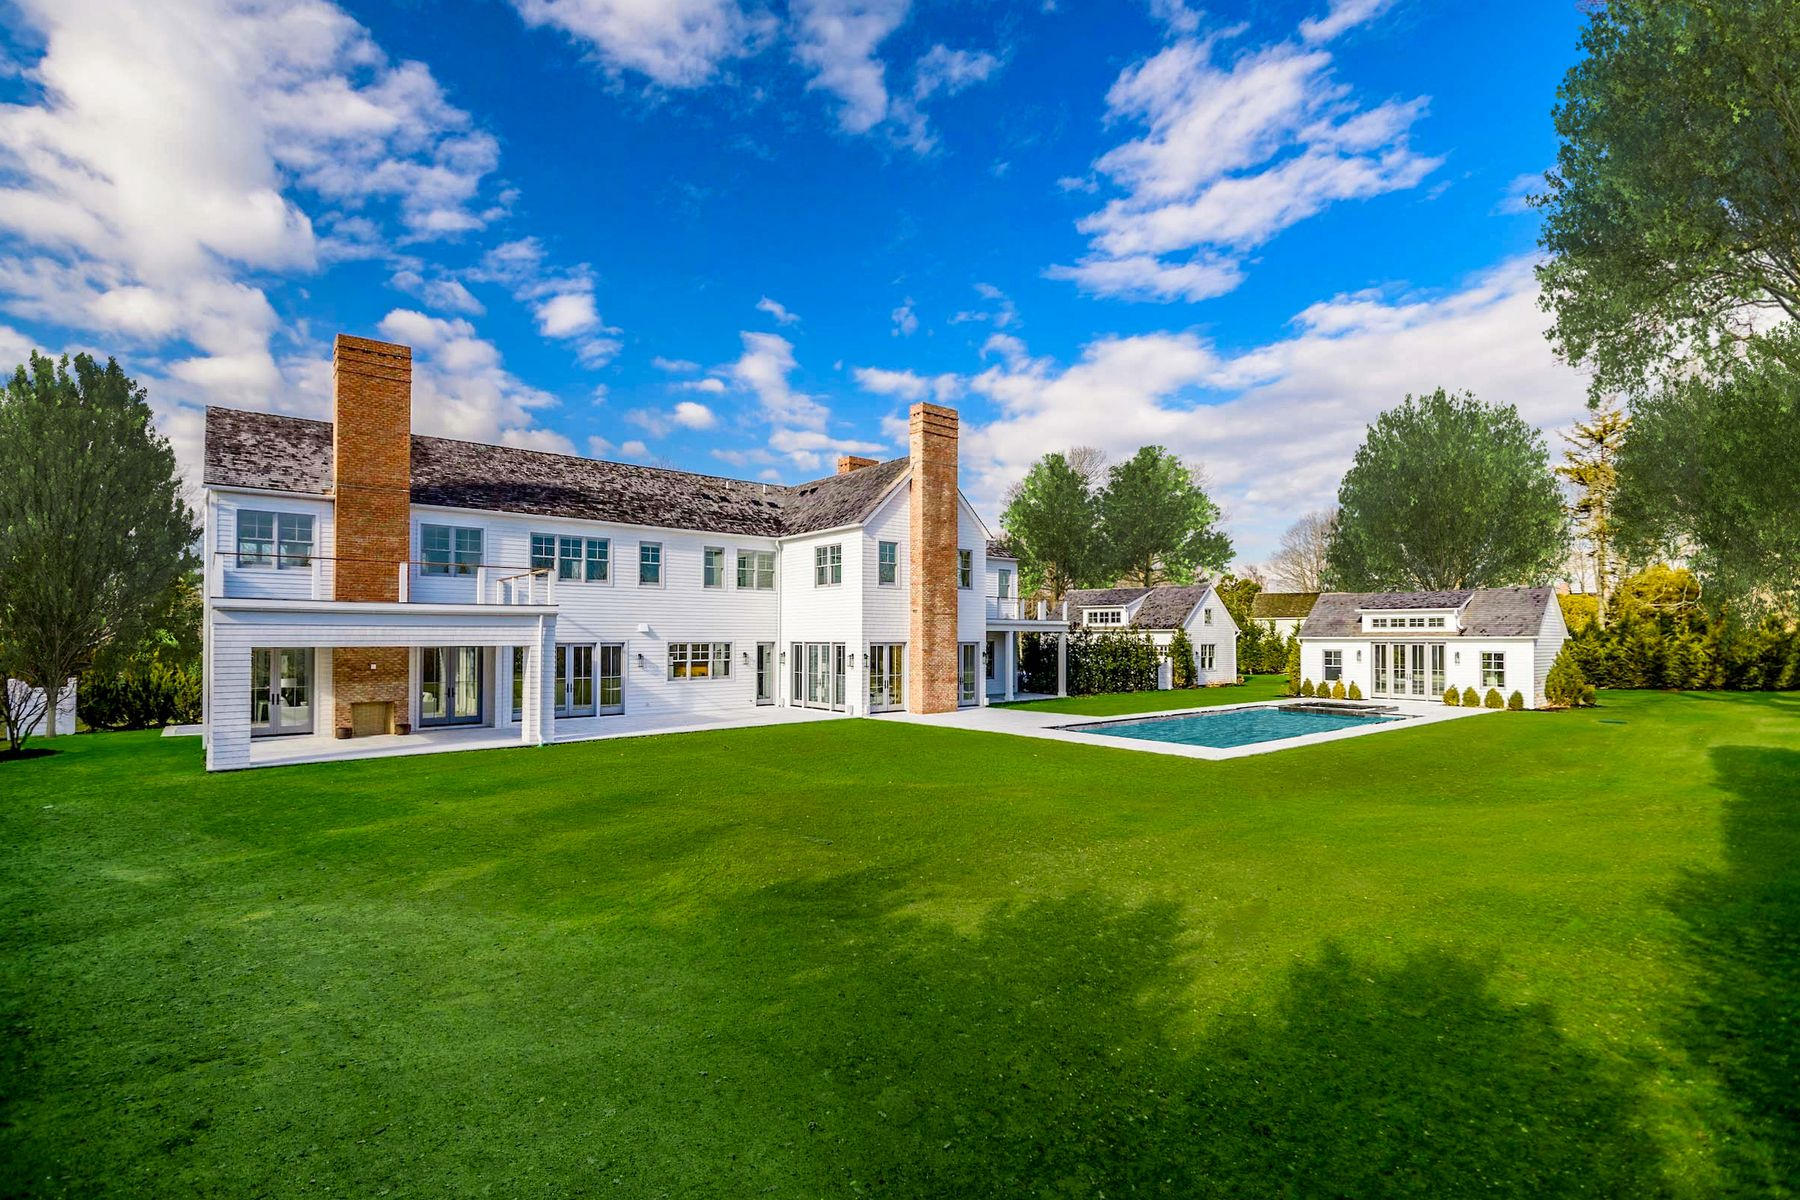 Single Family Homes for Sale at BRIDGEHAMPTON SOUTH MODERN FARMHOUSE 949 Ocean Road Bridgehampton, New York 11932 United States